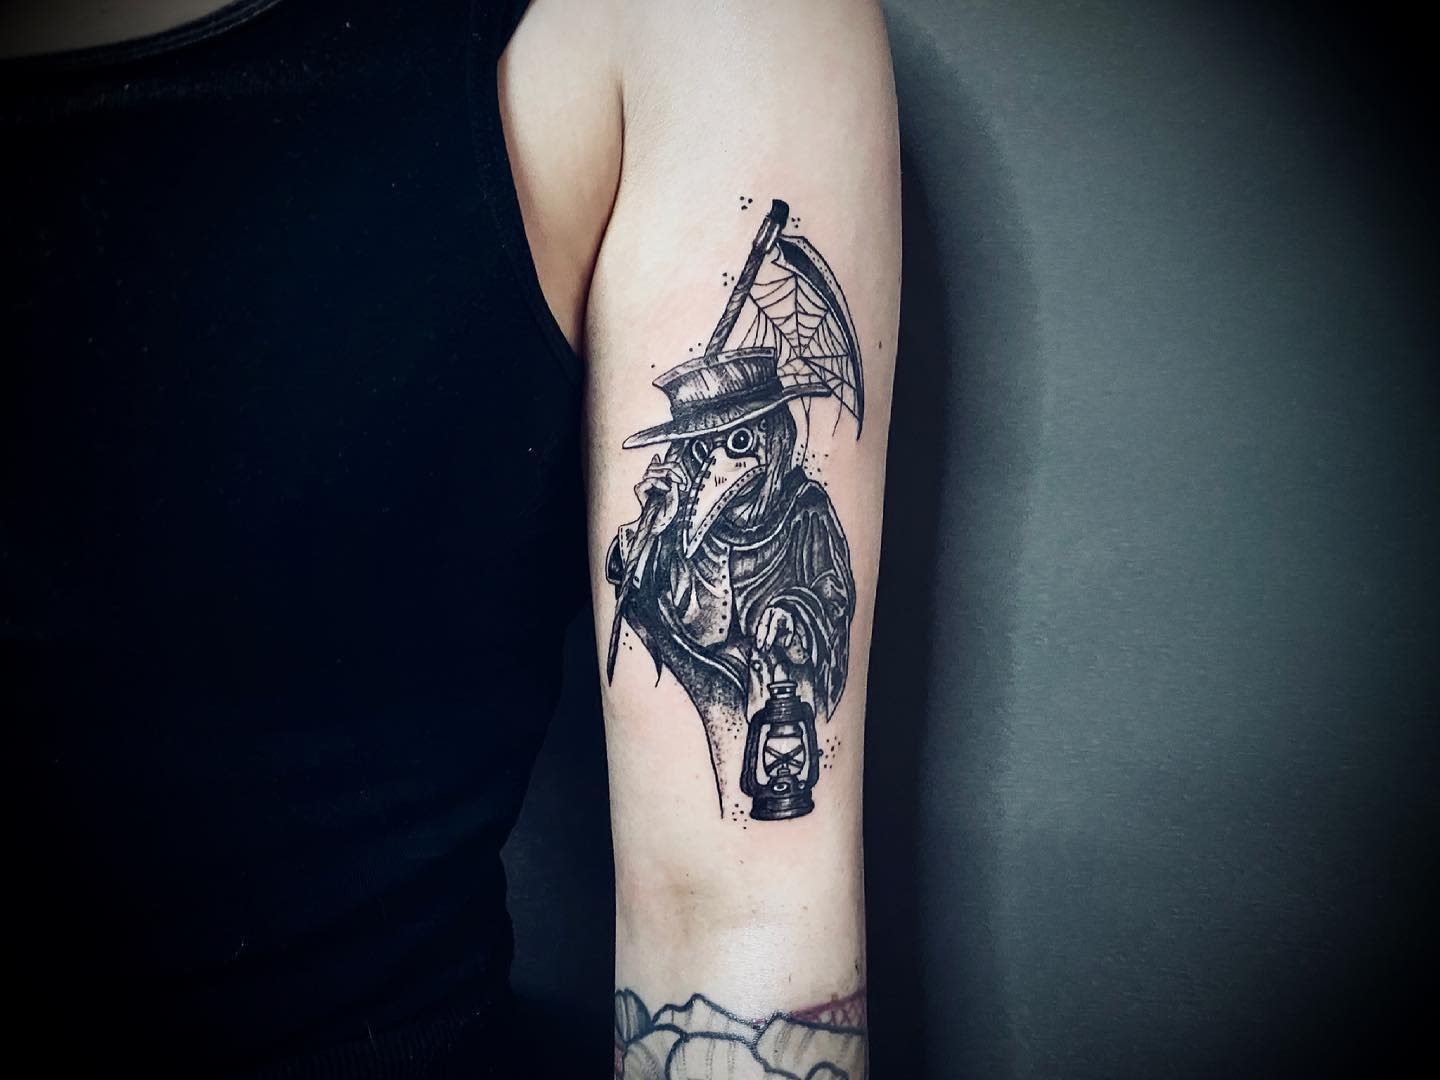 Upperarm COVID Tattoo -kate.witch